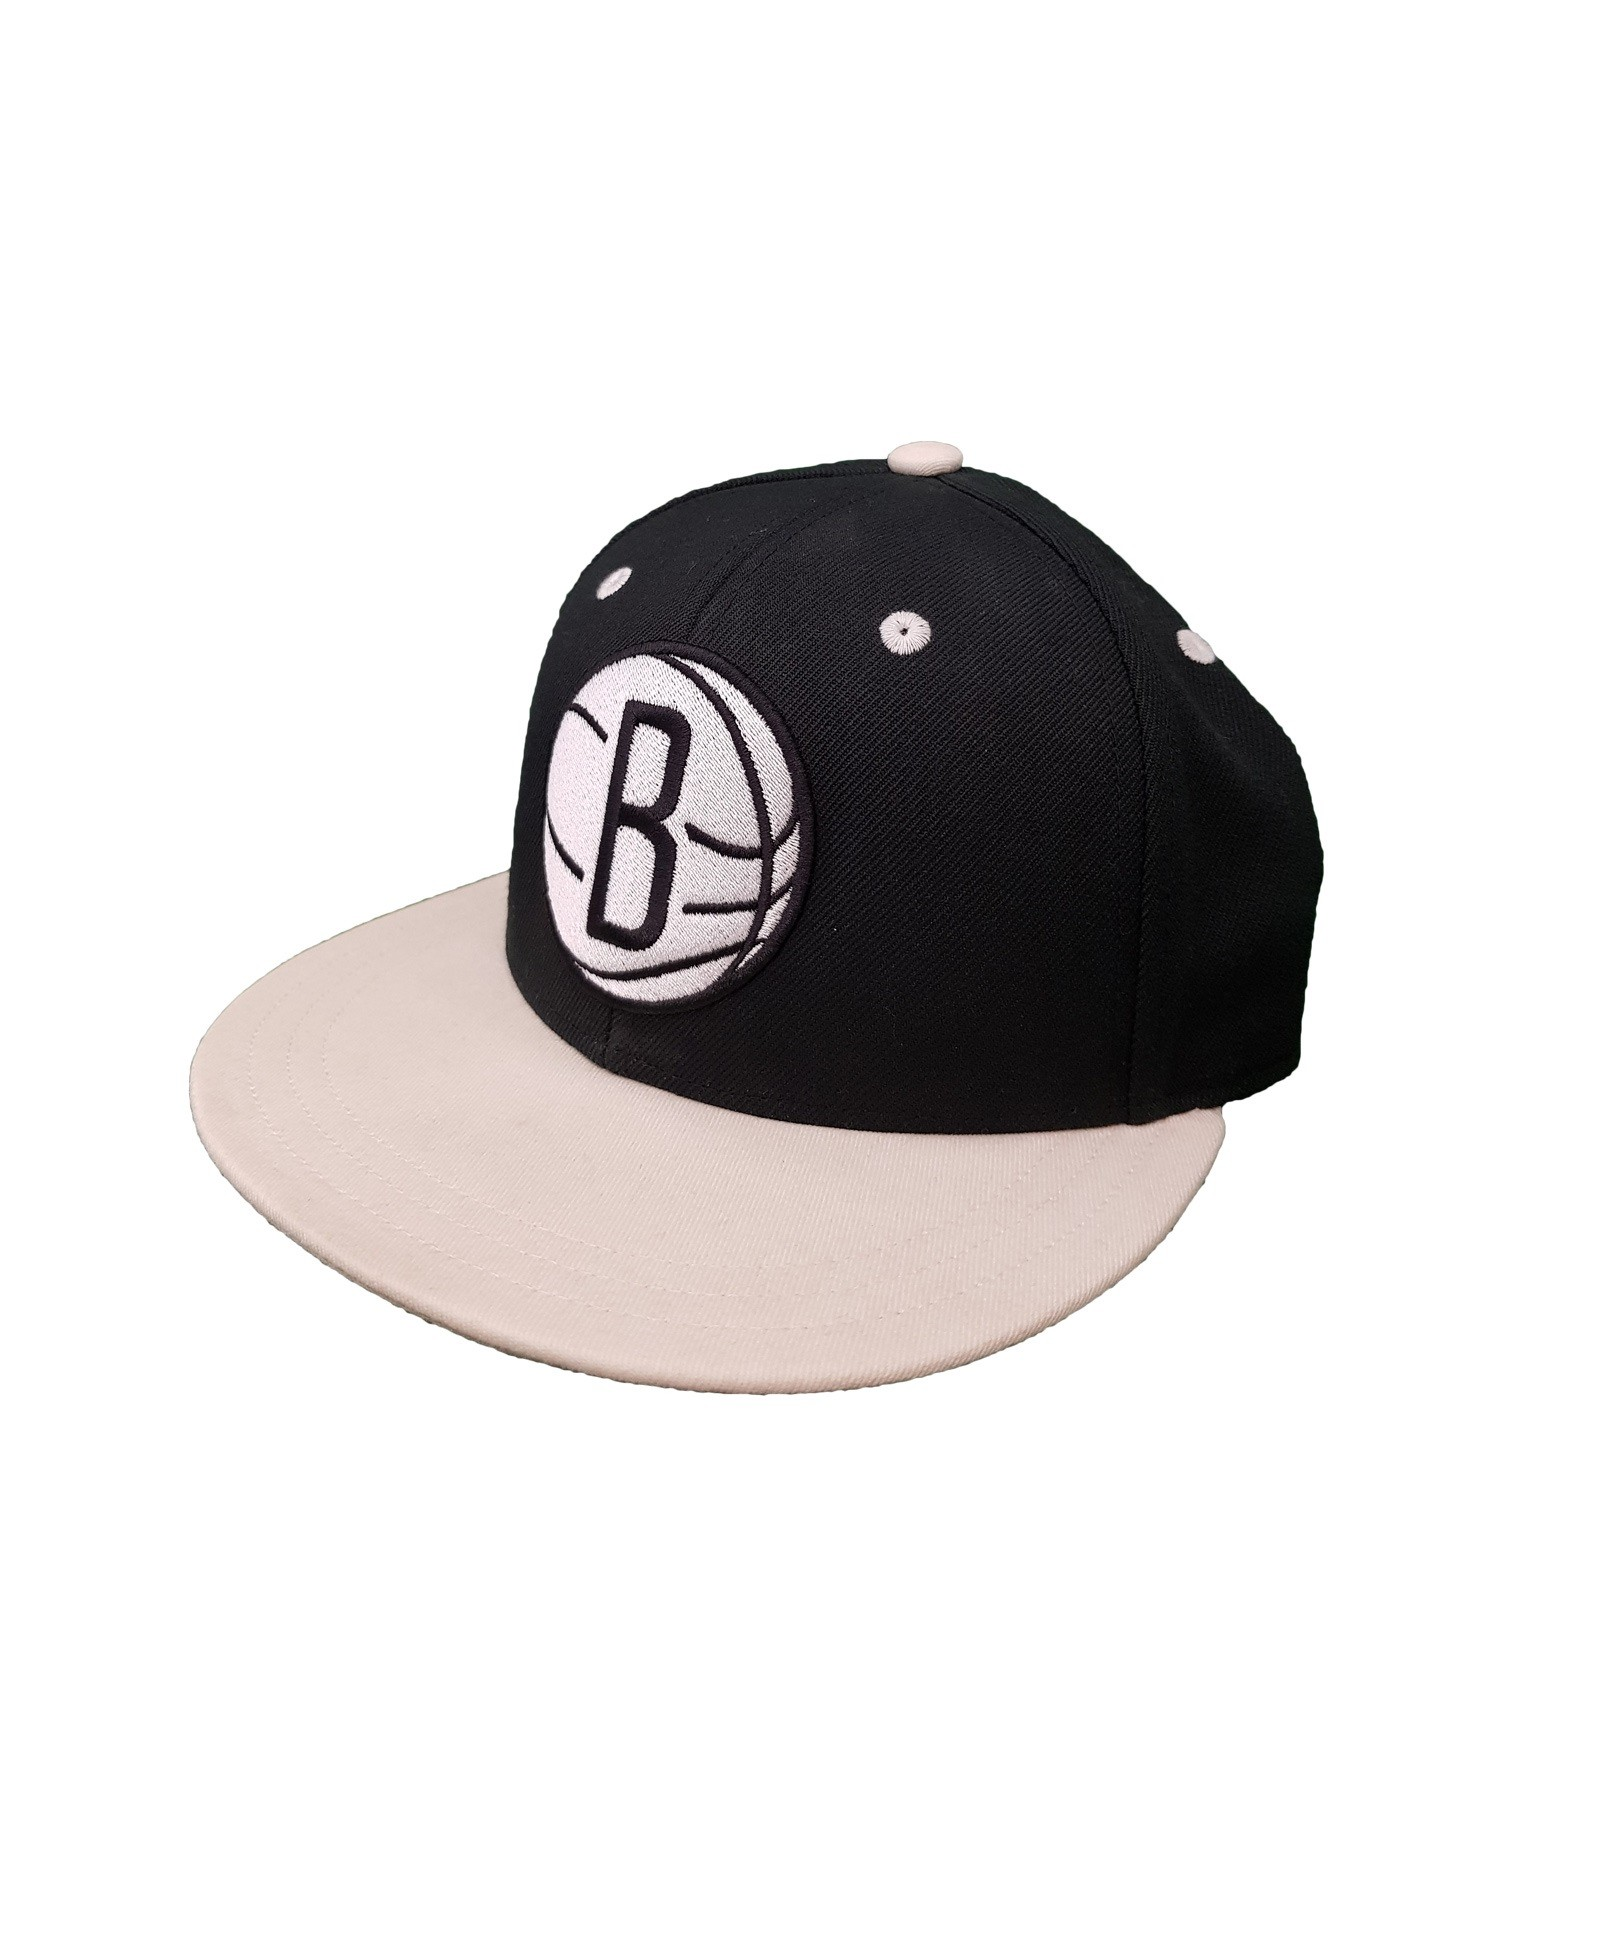 ADIDAS Brooklyn Nets Fitted Snapback